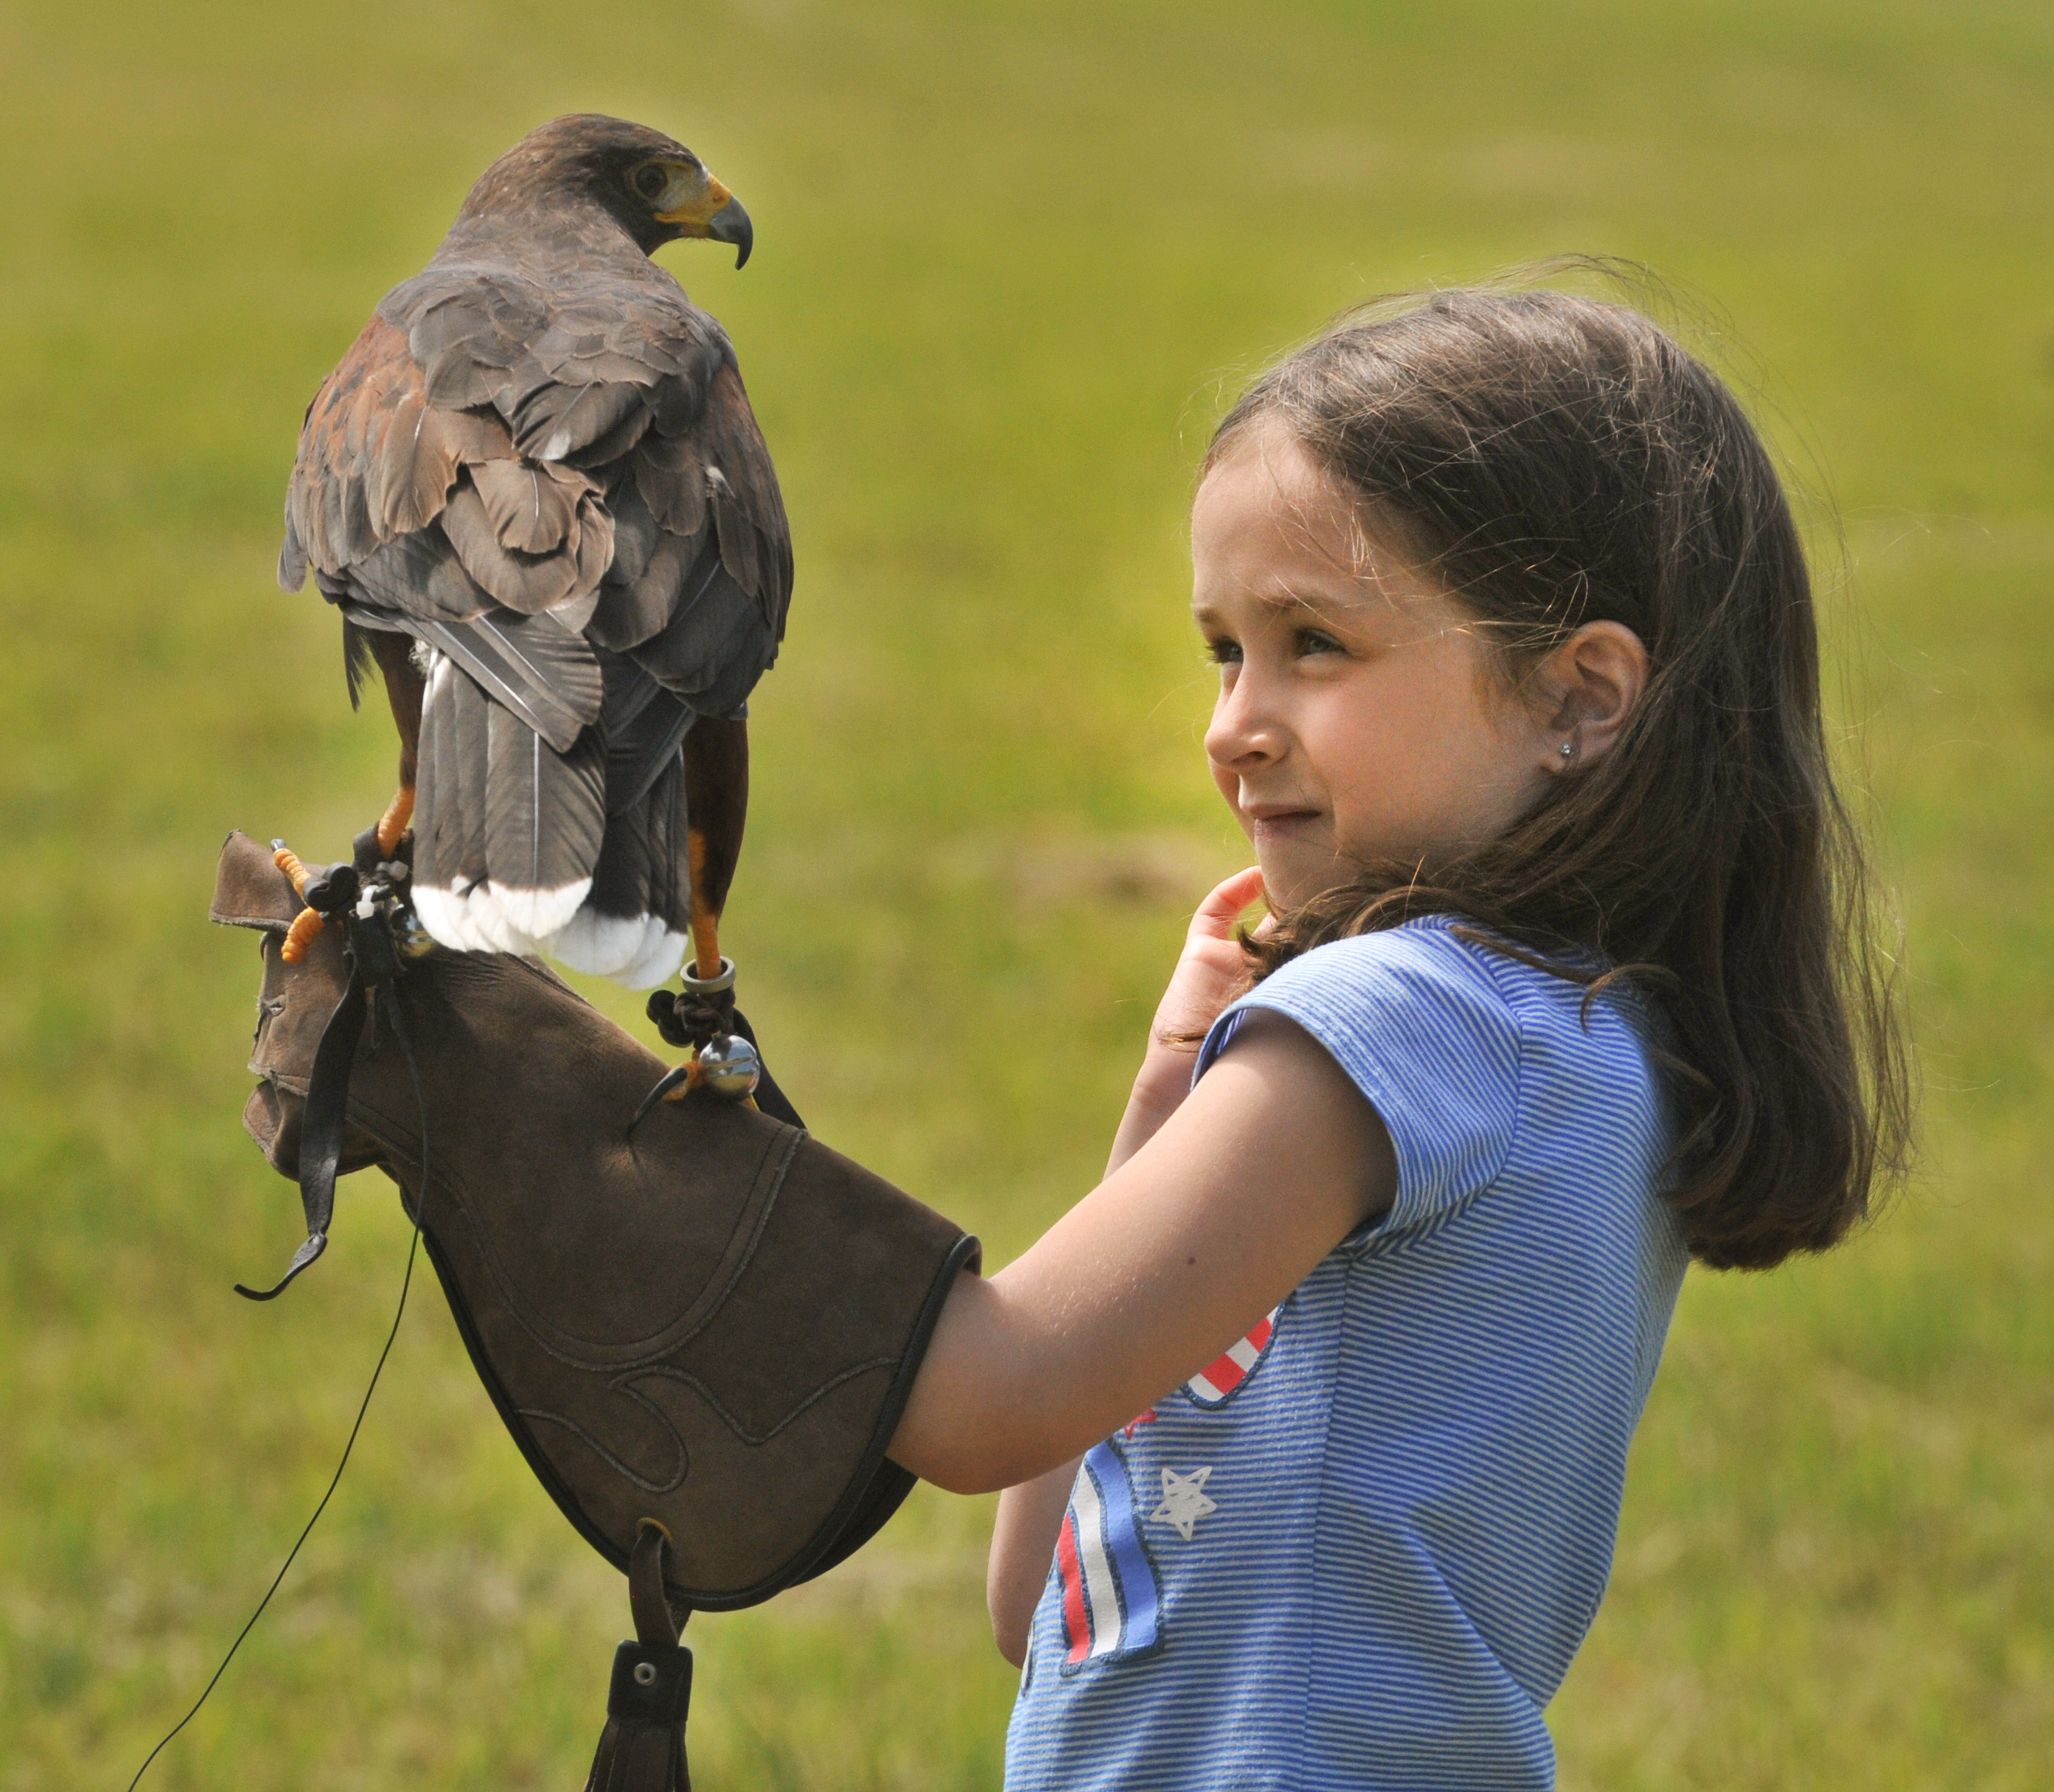 Learning Falconry with Chris Davis